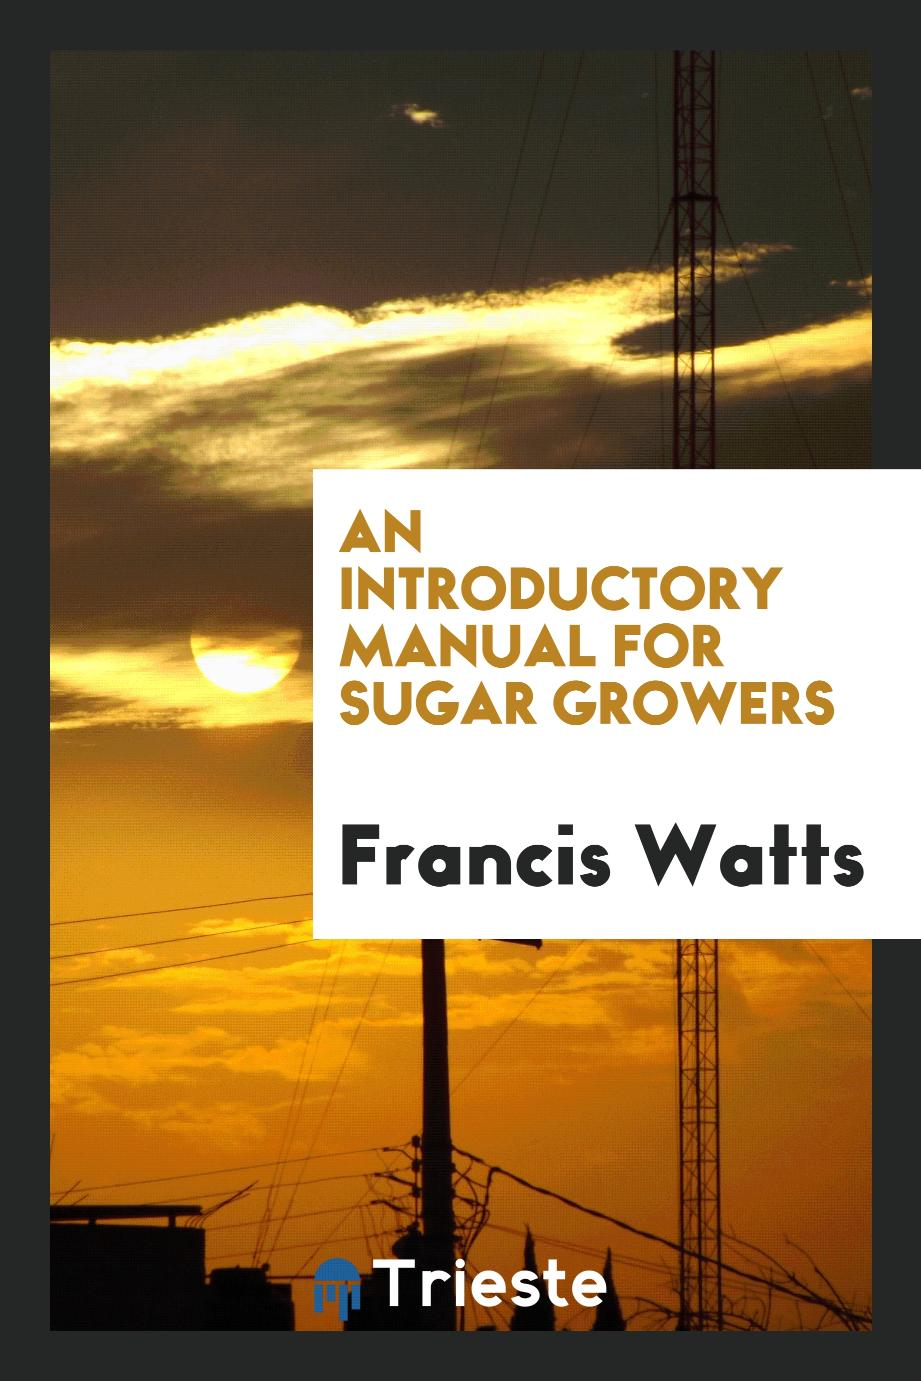 An Introductory Manual for Sugar Growers